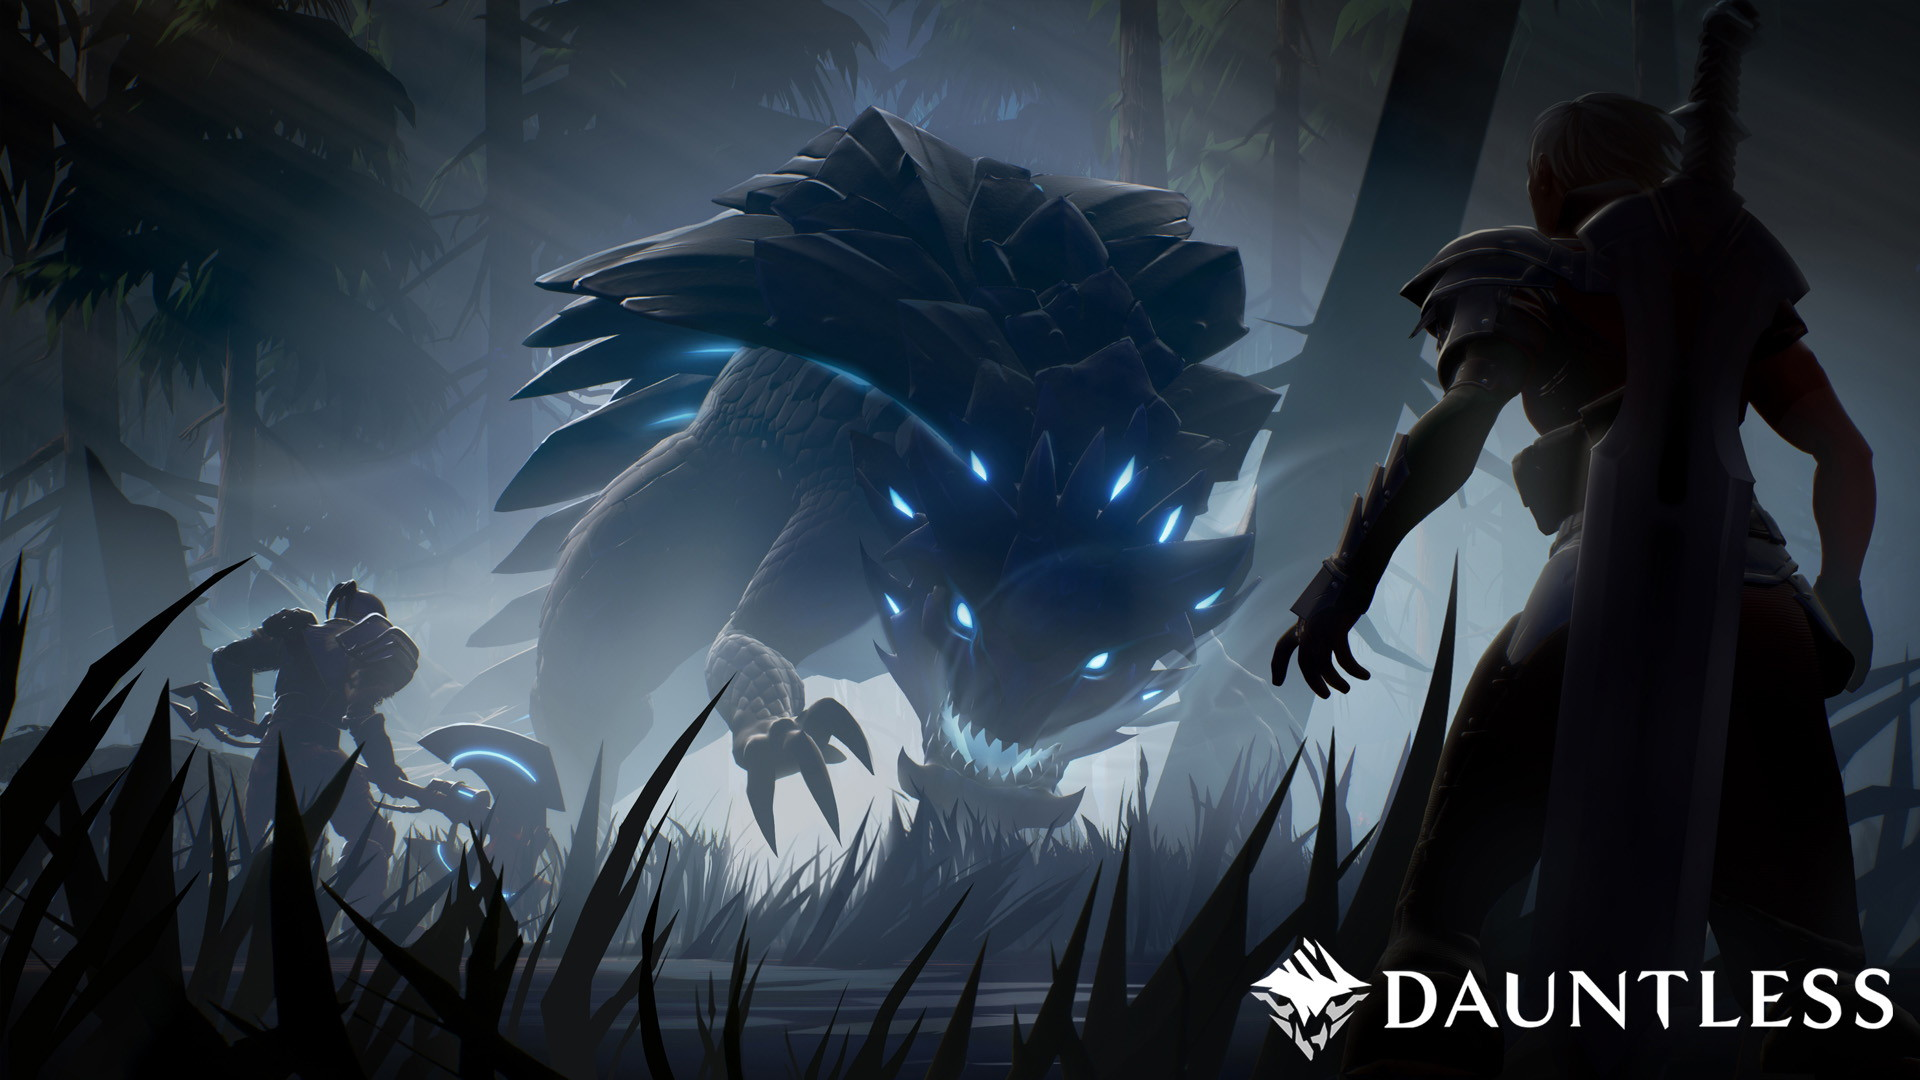 Dauntless - screenshot 8